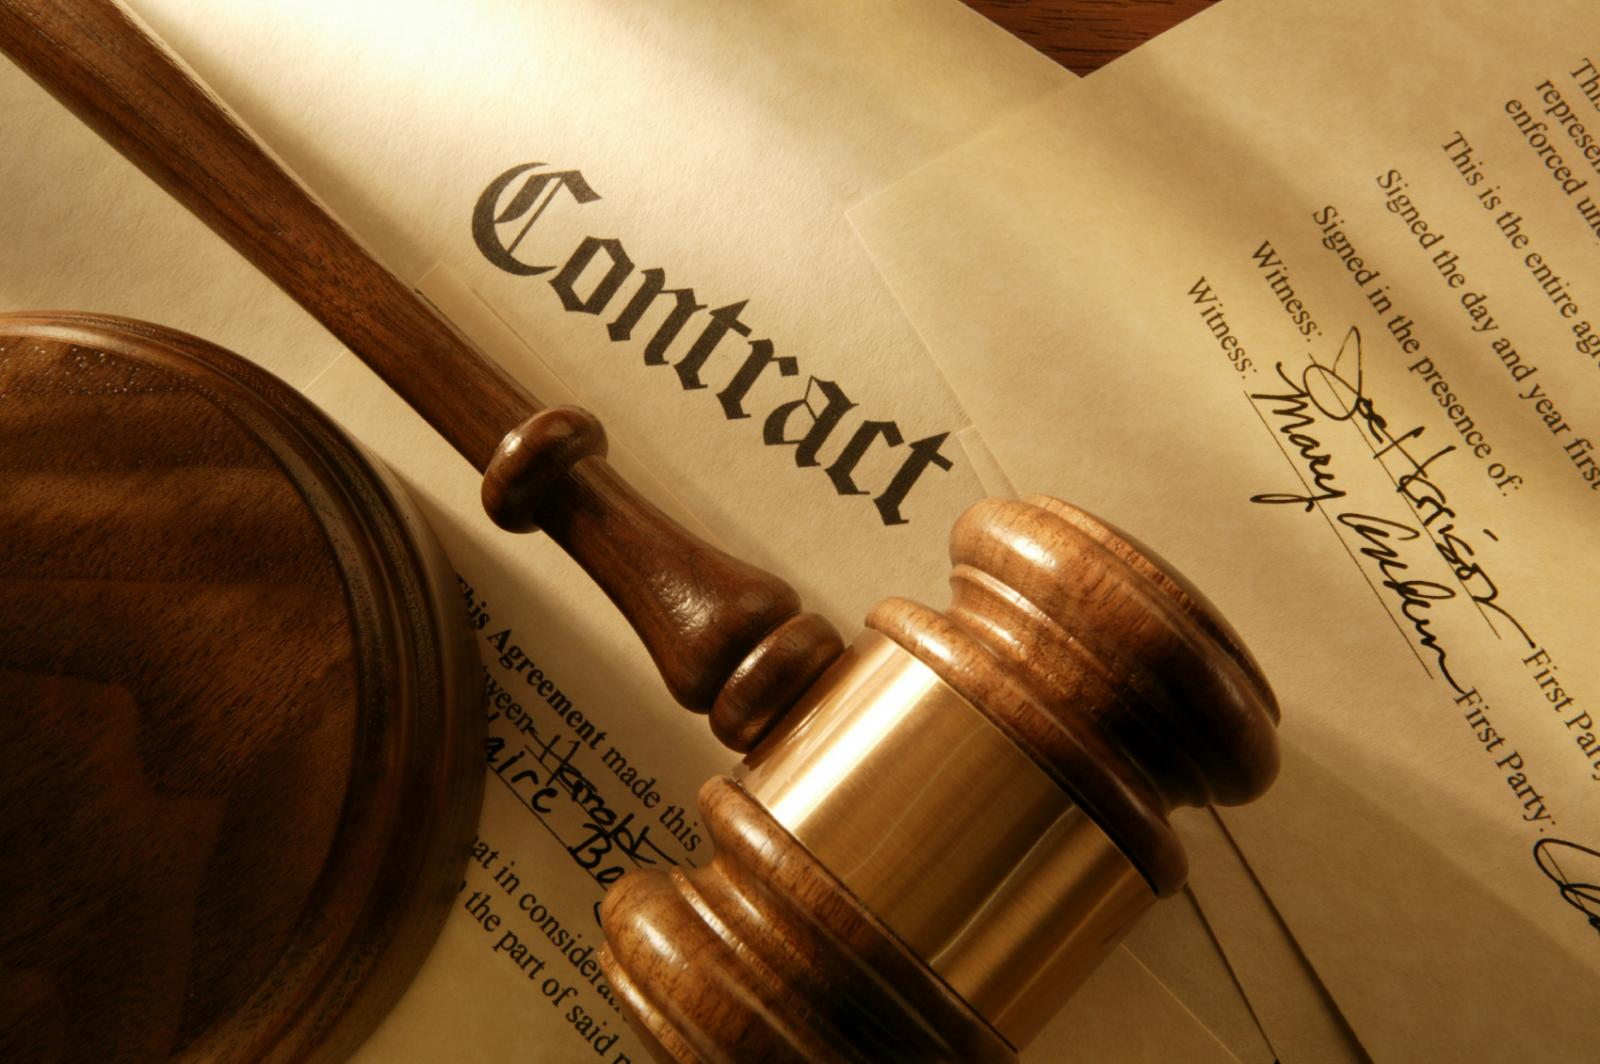 Healthcare Fraud: Braden Partners, L.P., Has Agreed to Pay To Teijin Pharma USA LLC, for Violating the False Claims Act